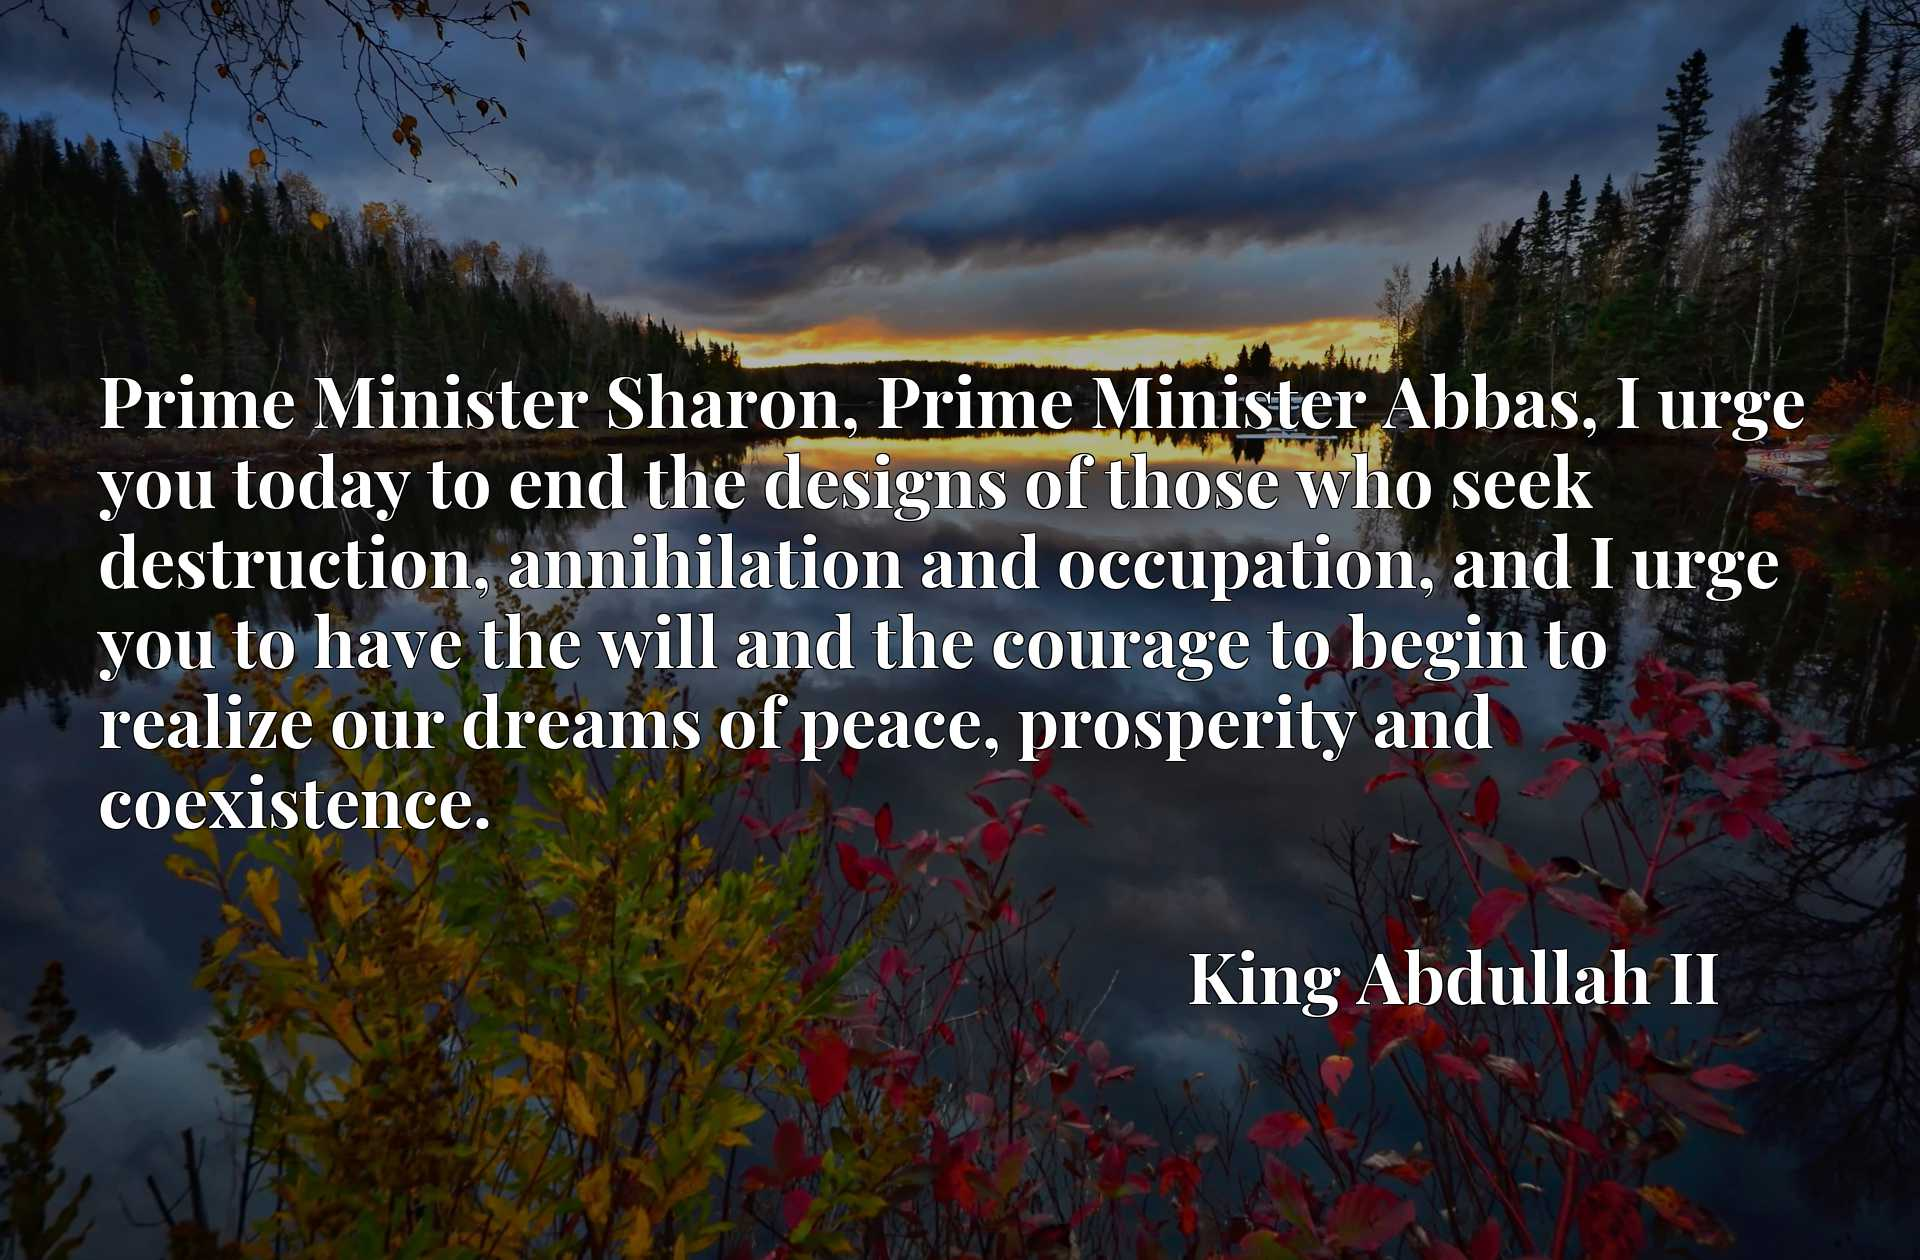 Prime Minister Sharon, Prime Minister Abbas, I urge you today to end the designs of those who seek destruction, annihilation and occupation, and I urge you to have the will and the courage to begin to realize our dreams of peace, prosperity and coexistence.